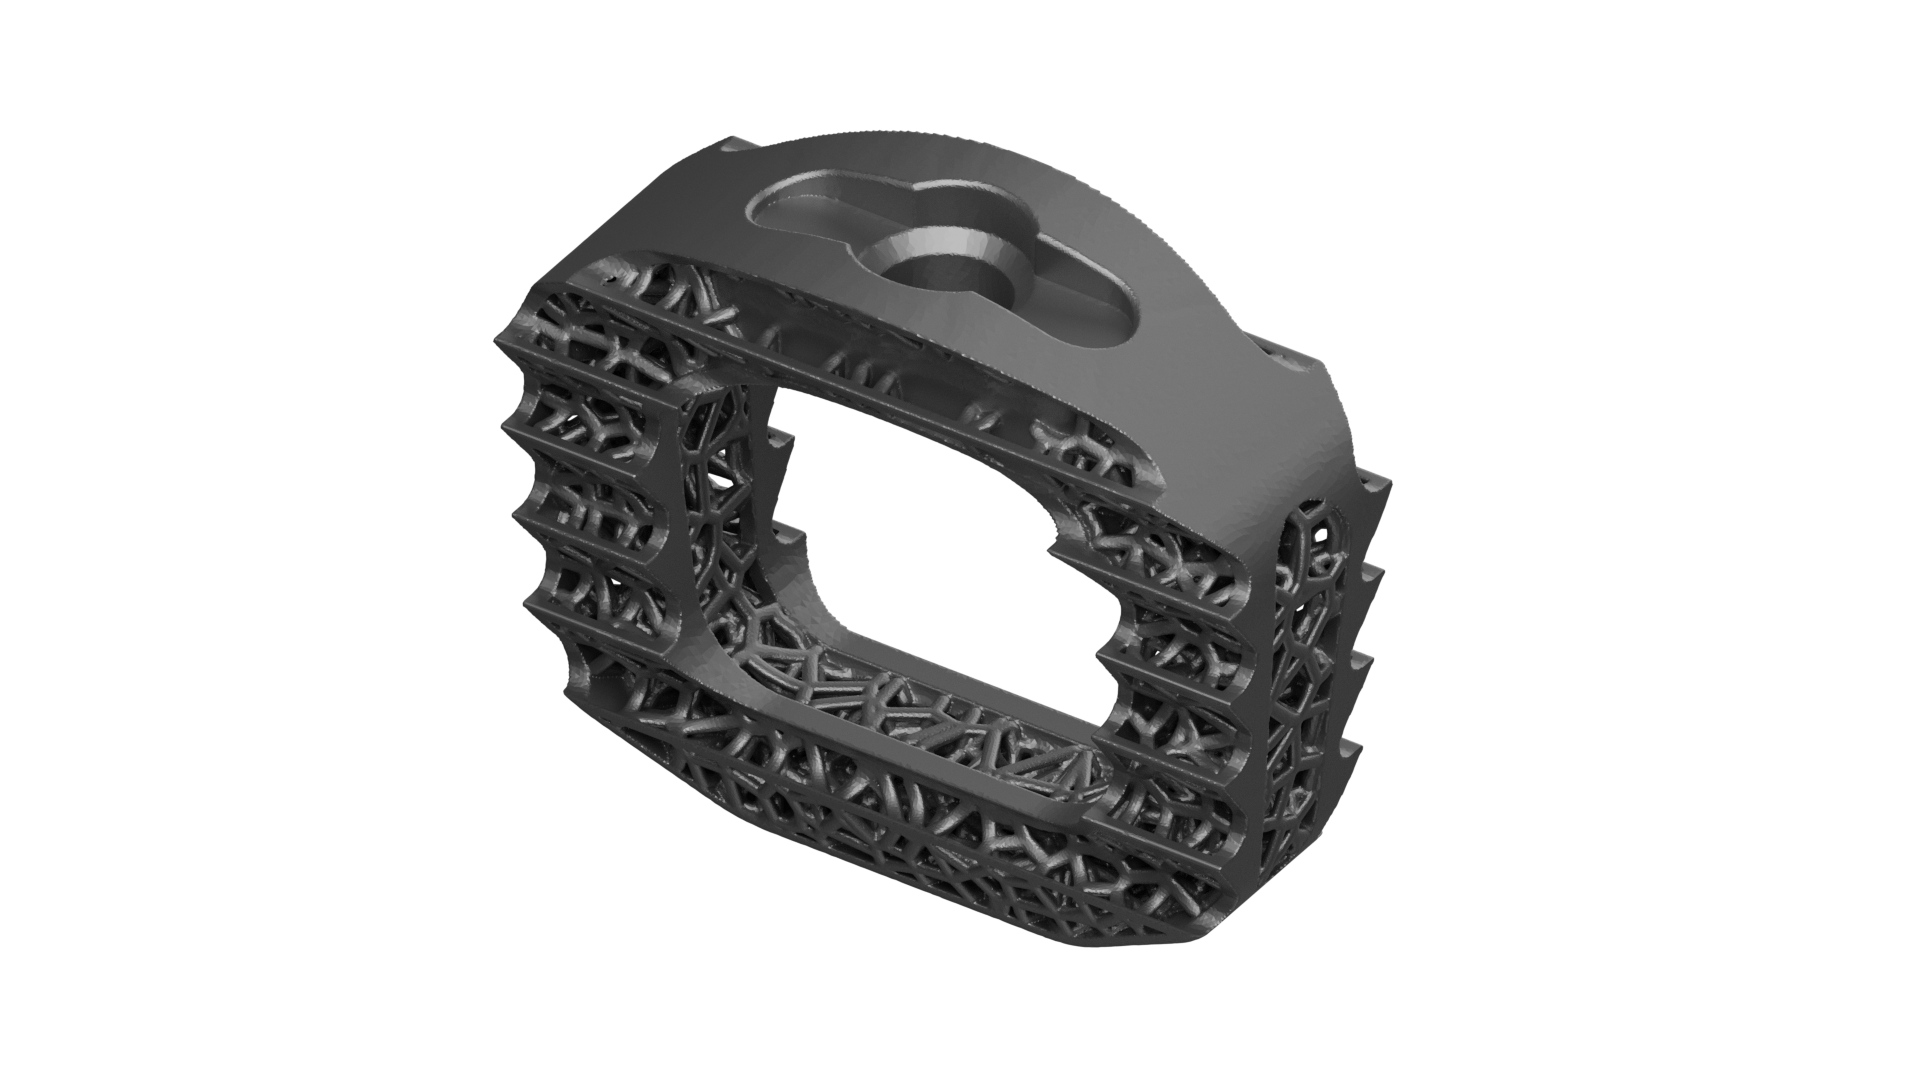 Top View of the latticed, aggressive teeth 3D Printed Titanium Cervical IBFD implant